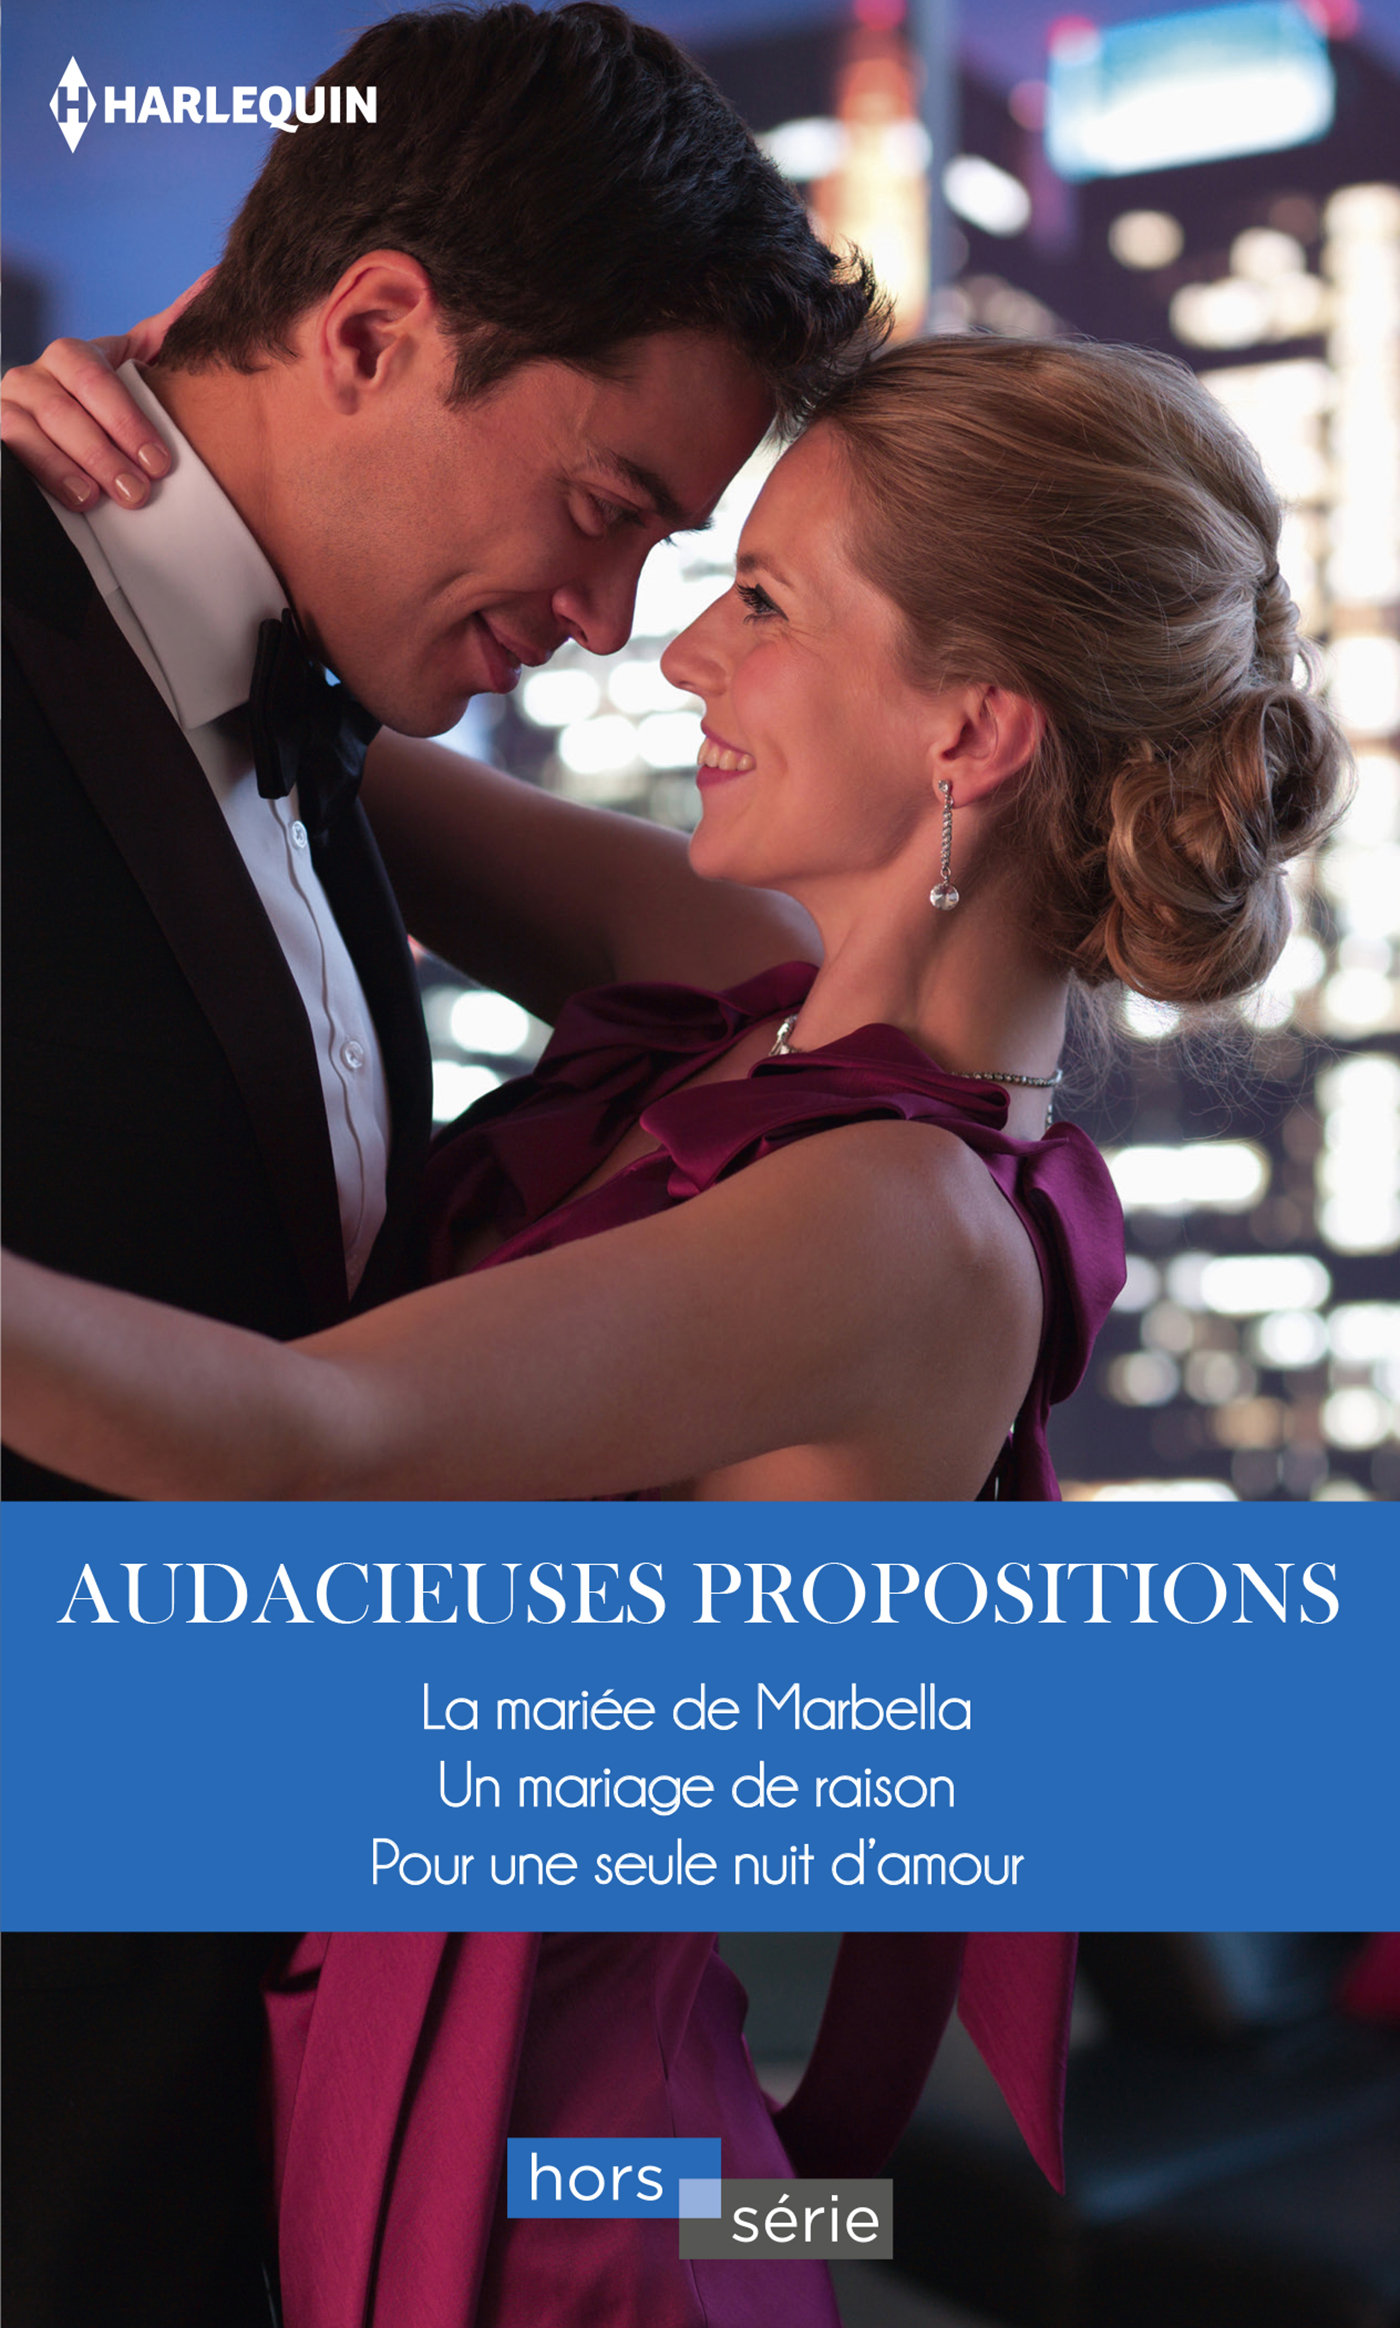 Audacieuses propositions